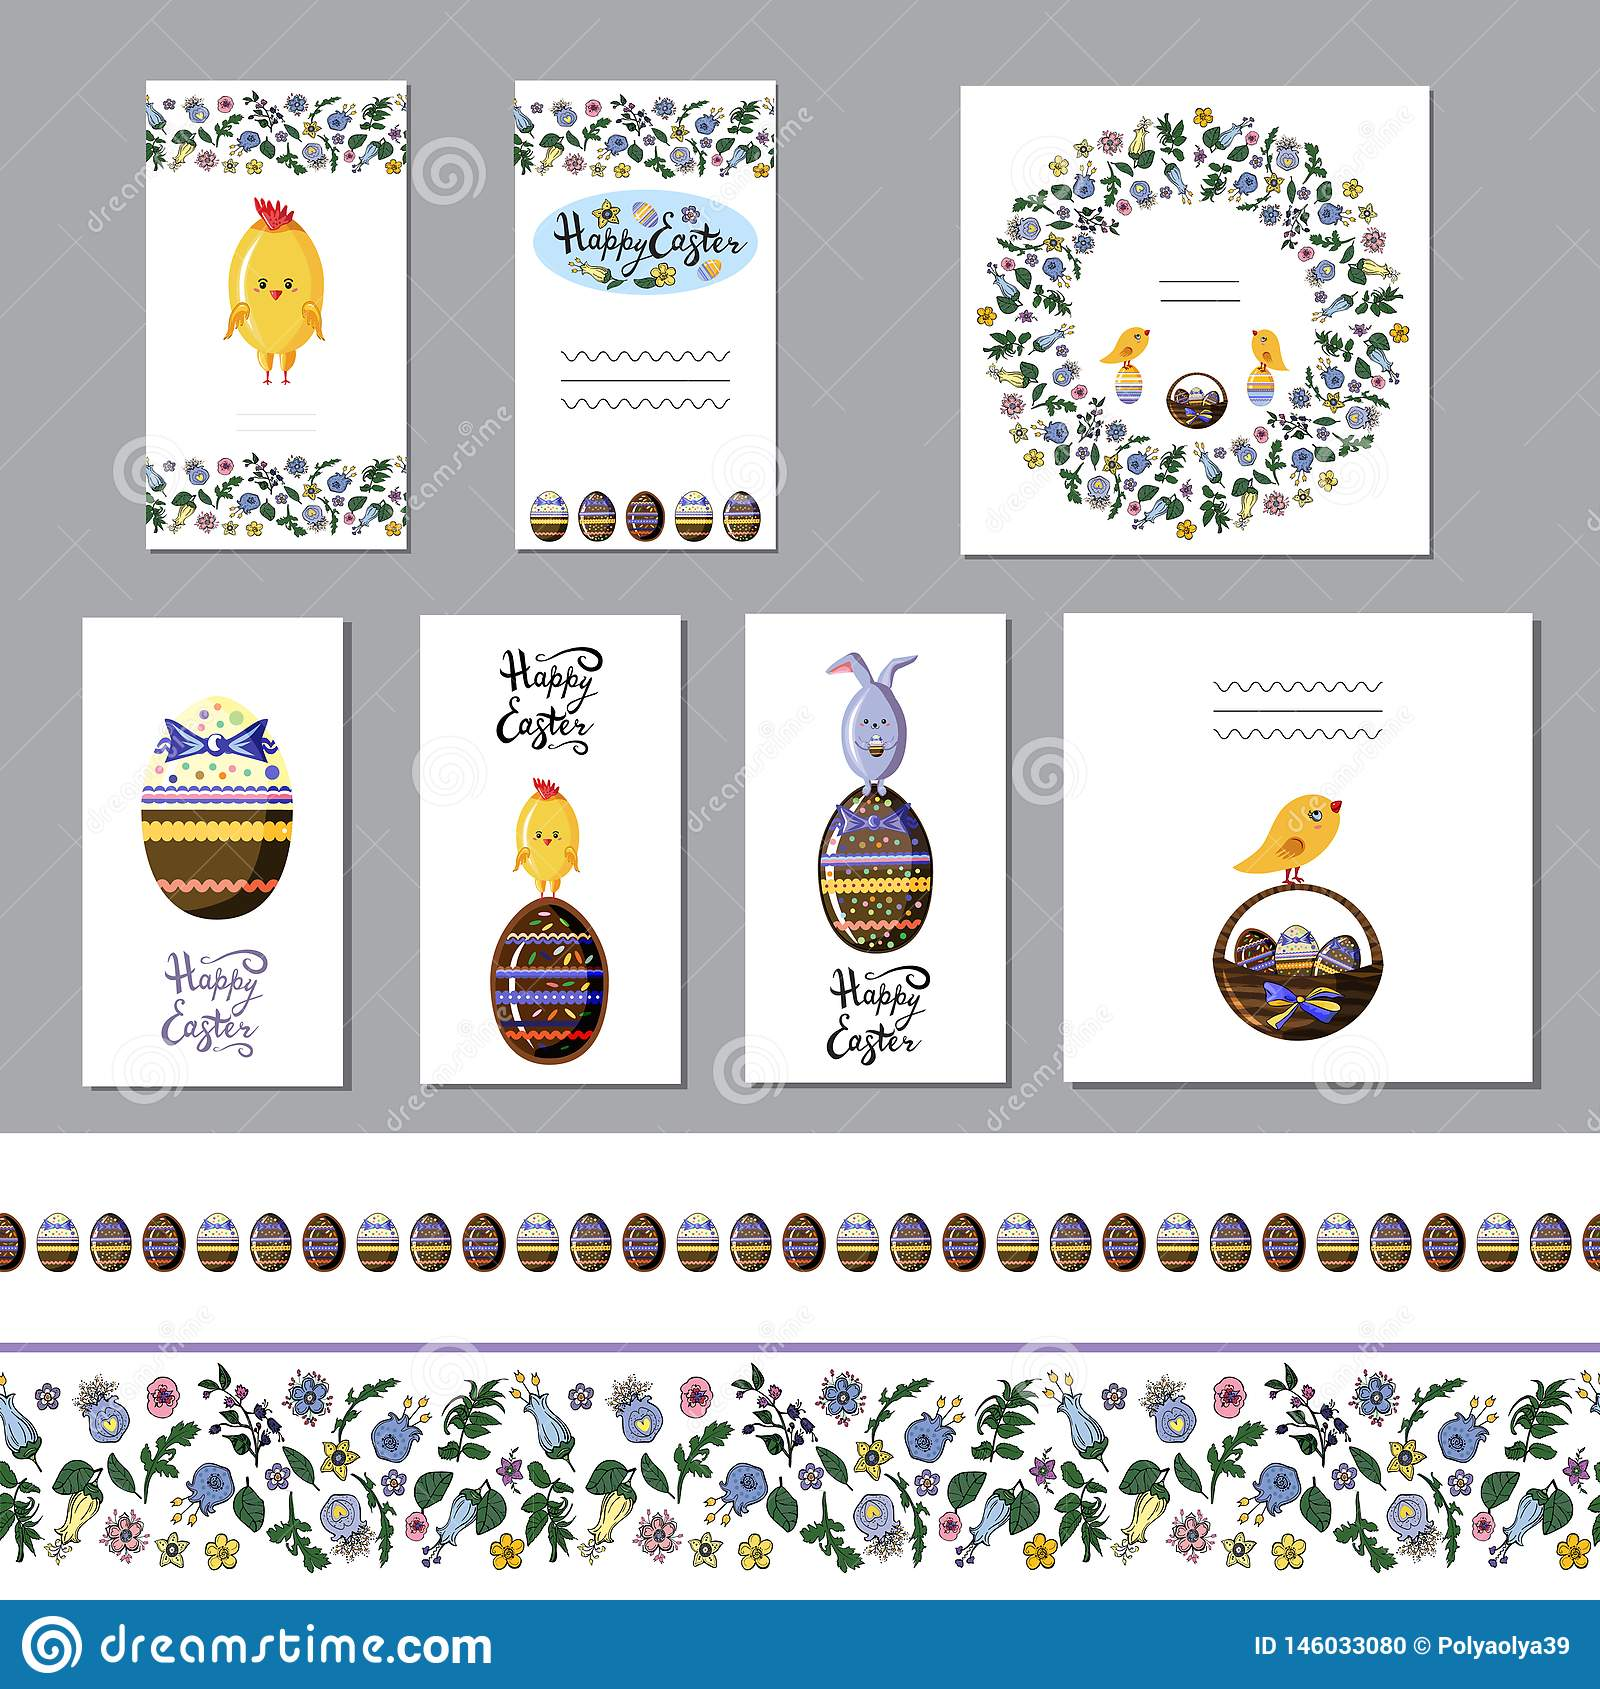 Cute easter greeting card set with chocolate eggs and seamless borders. Flat vector